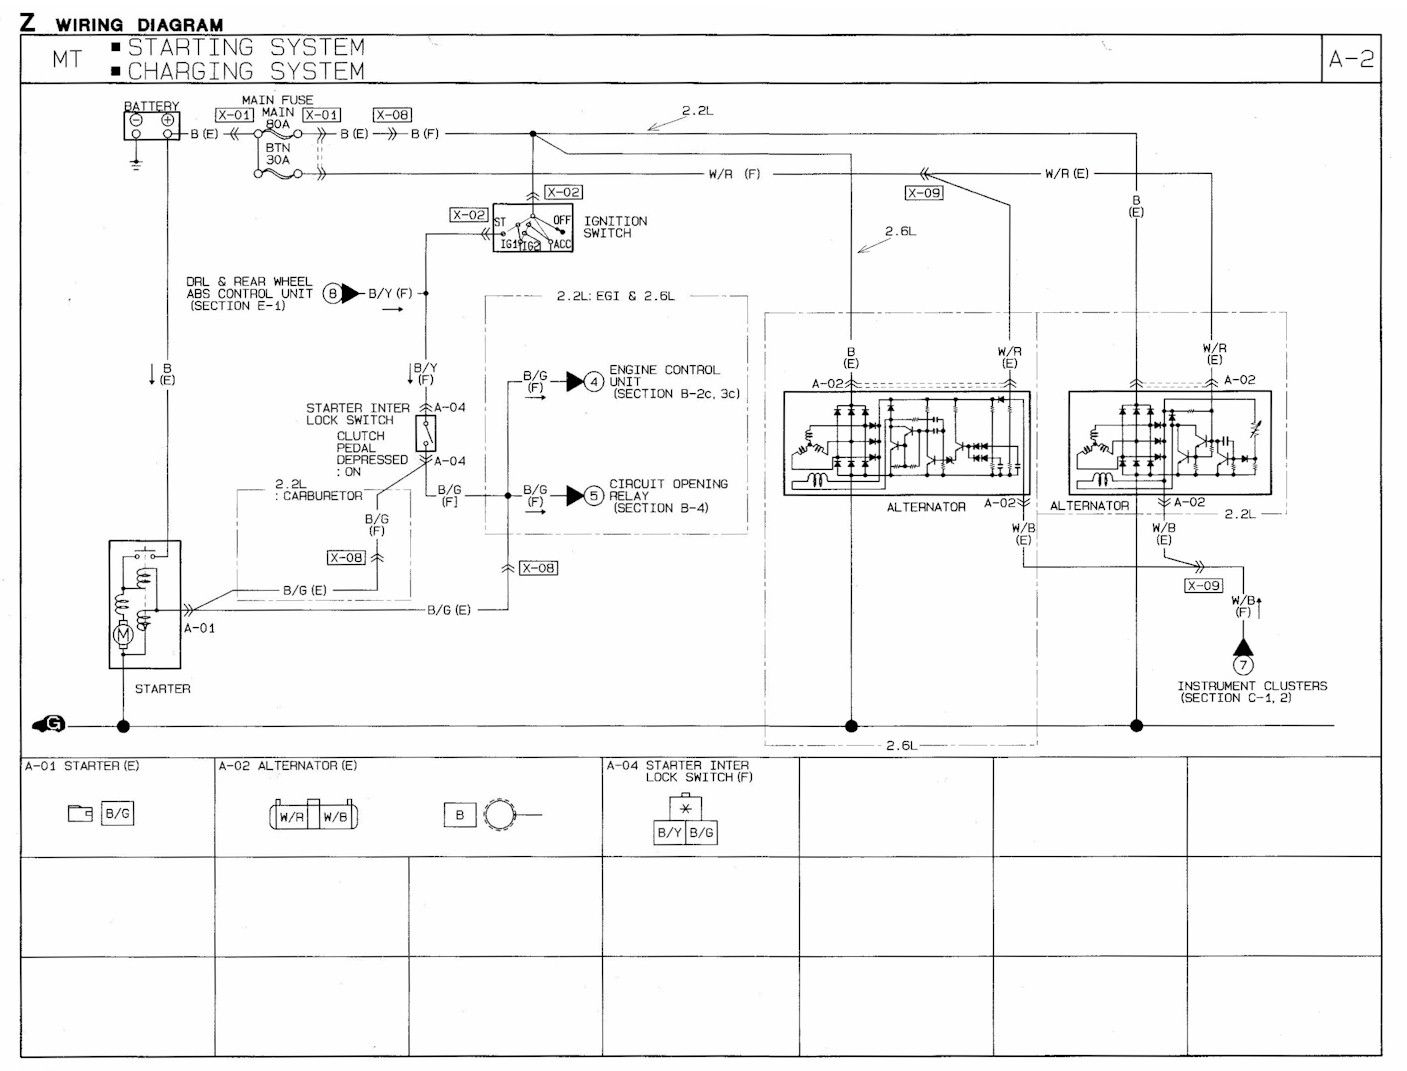 mazda b2600i 4x4 starter wiring 1989 mazda b2600i mazda wiring diagram download 1991 mazda b2600i starter alternator wiring diagram ...